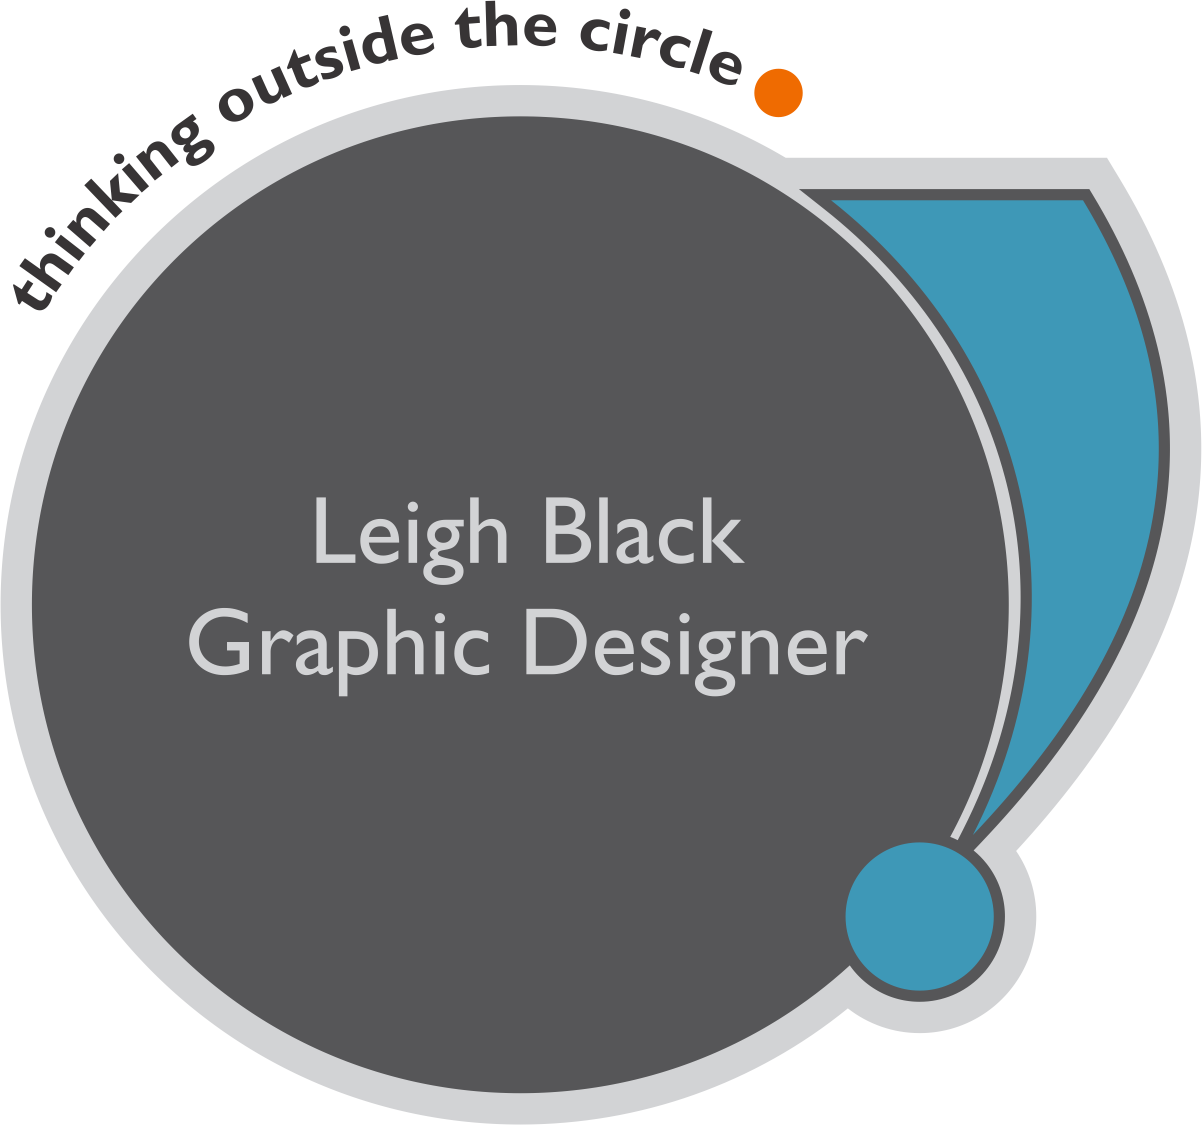 Leigh Black, Graphic Designer